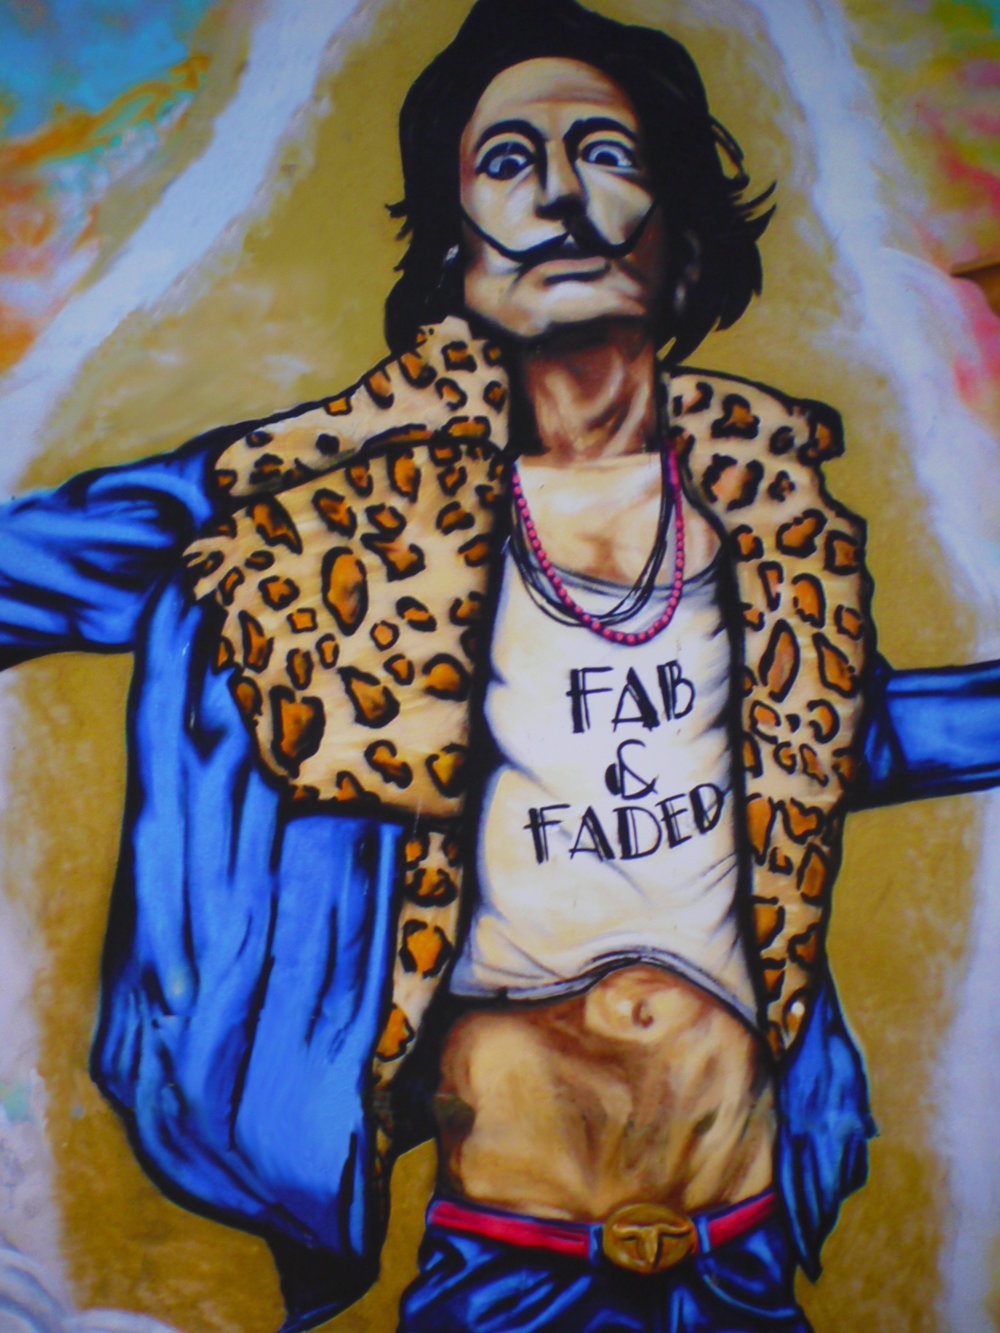 f&f man painting.JPG